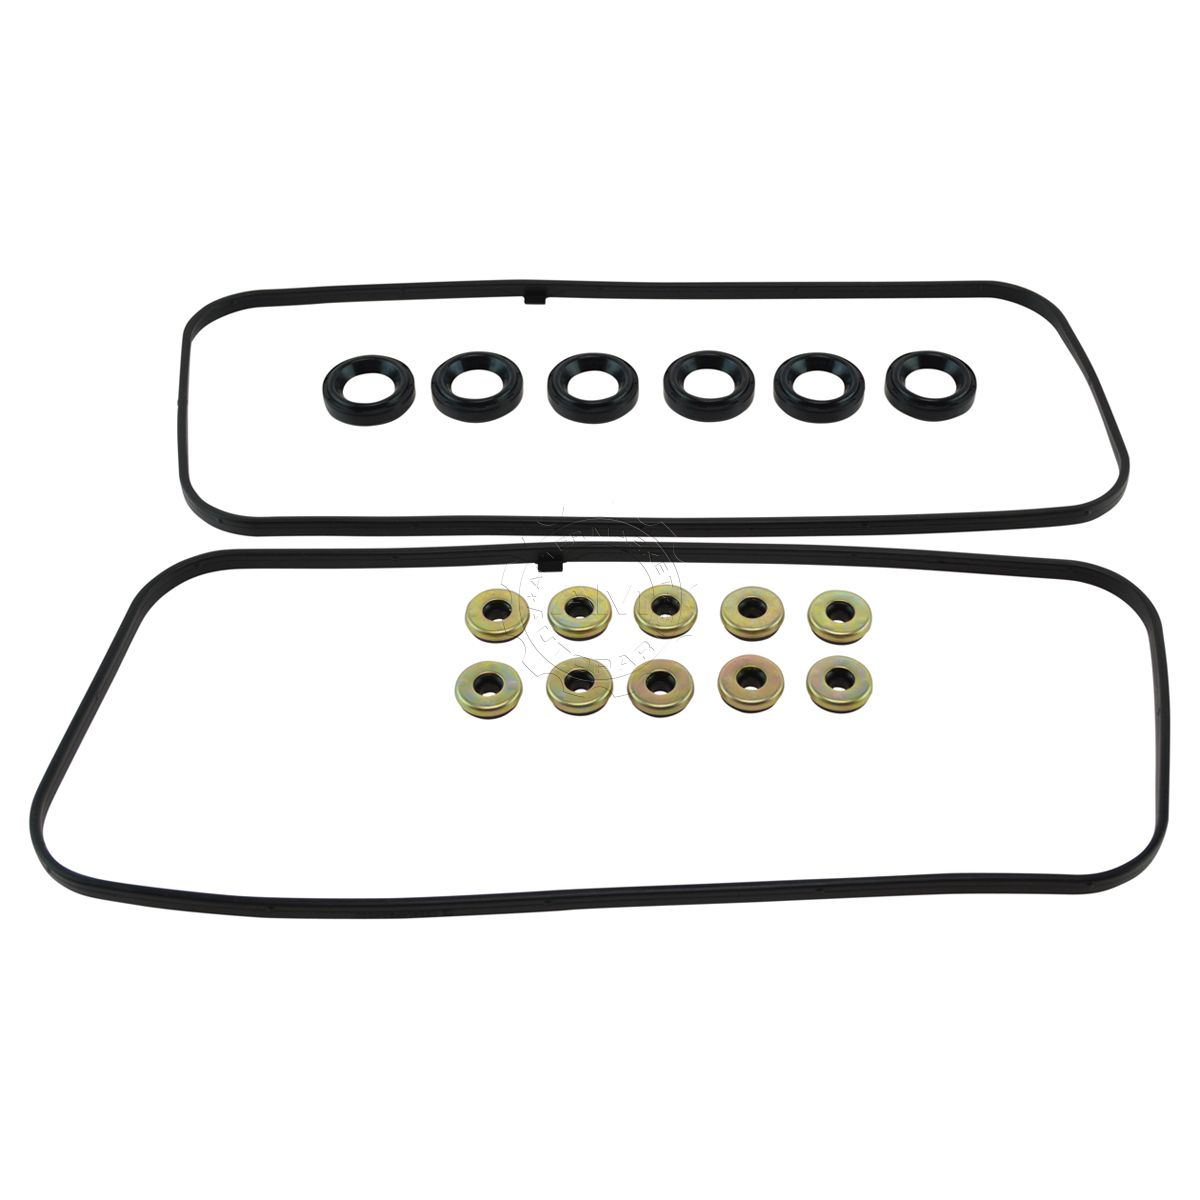 Valve Cover Gasket Set For Acura CL TL MDX Honda Accord